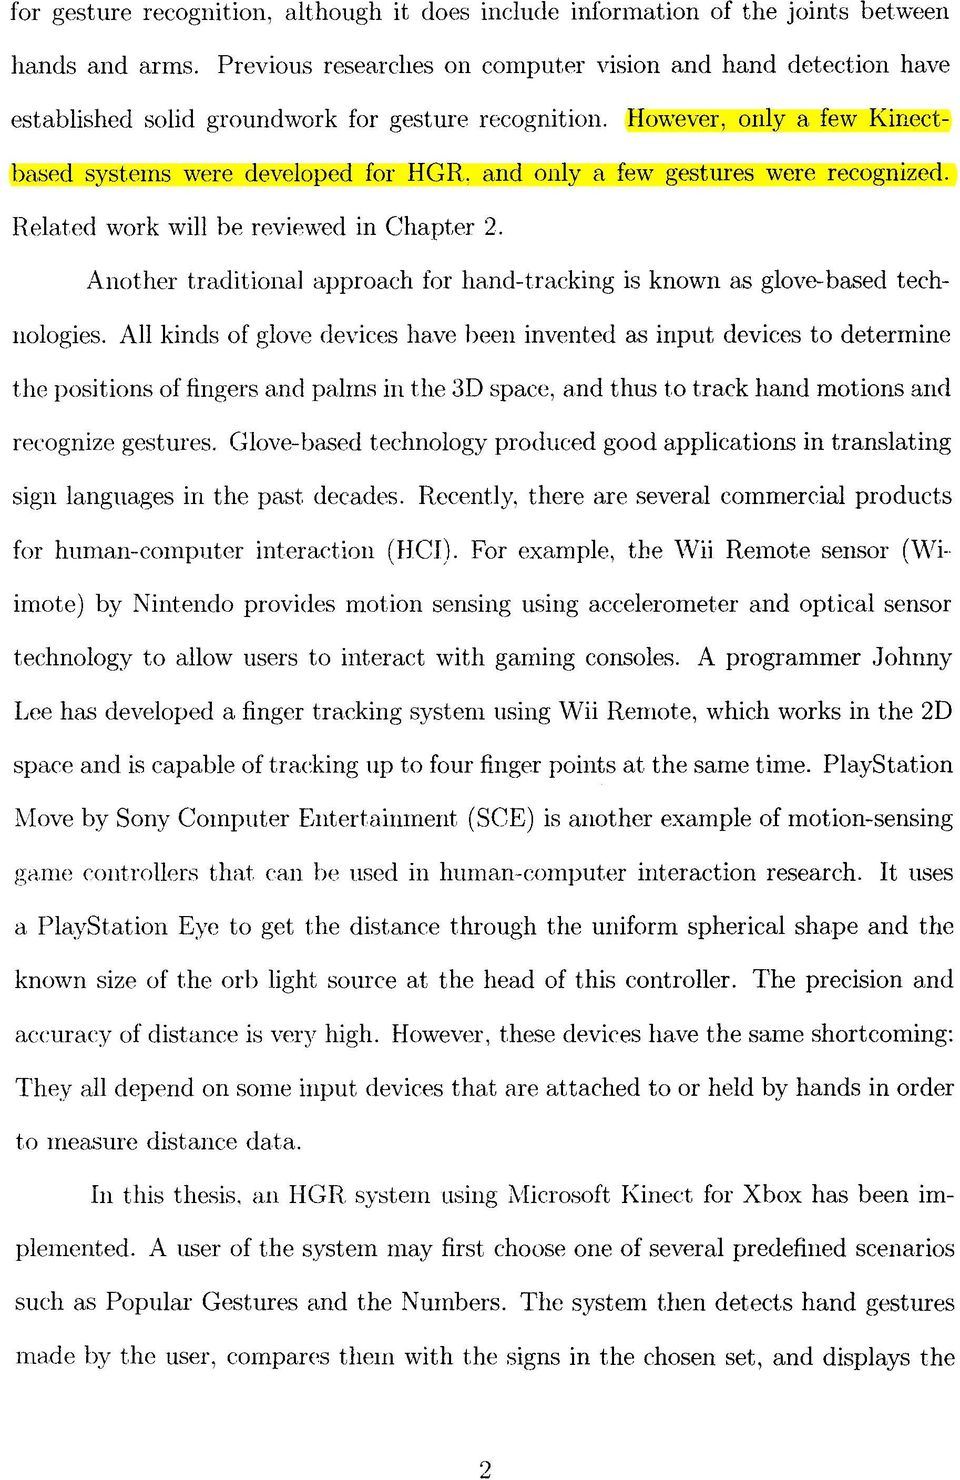 HAND GESTURE RECOGNITION USING KINECT - PDF